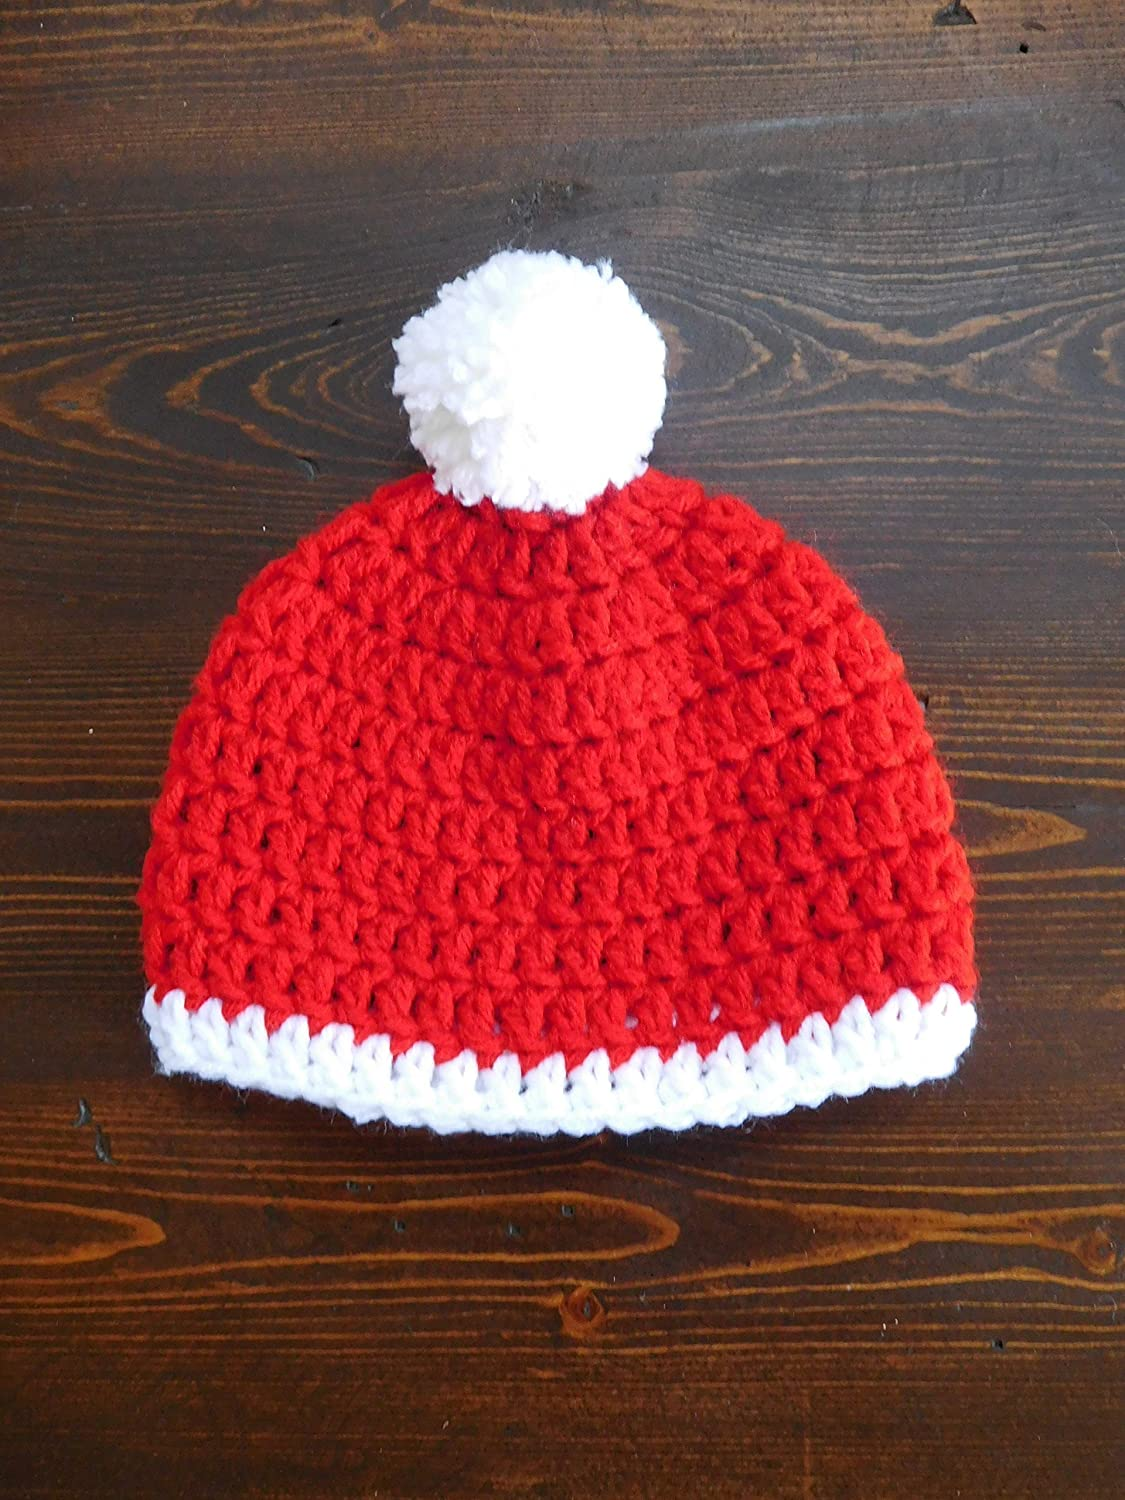 HANDMADE CROCHET KNIT HATS FOR BABIES-CHRISTMAS HAT-SIZE 0-6 MONS /& 6-12 MONS